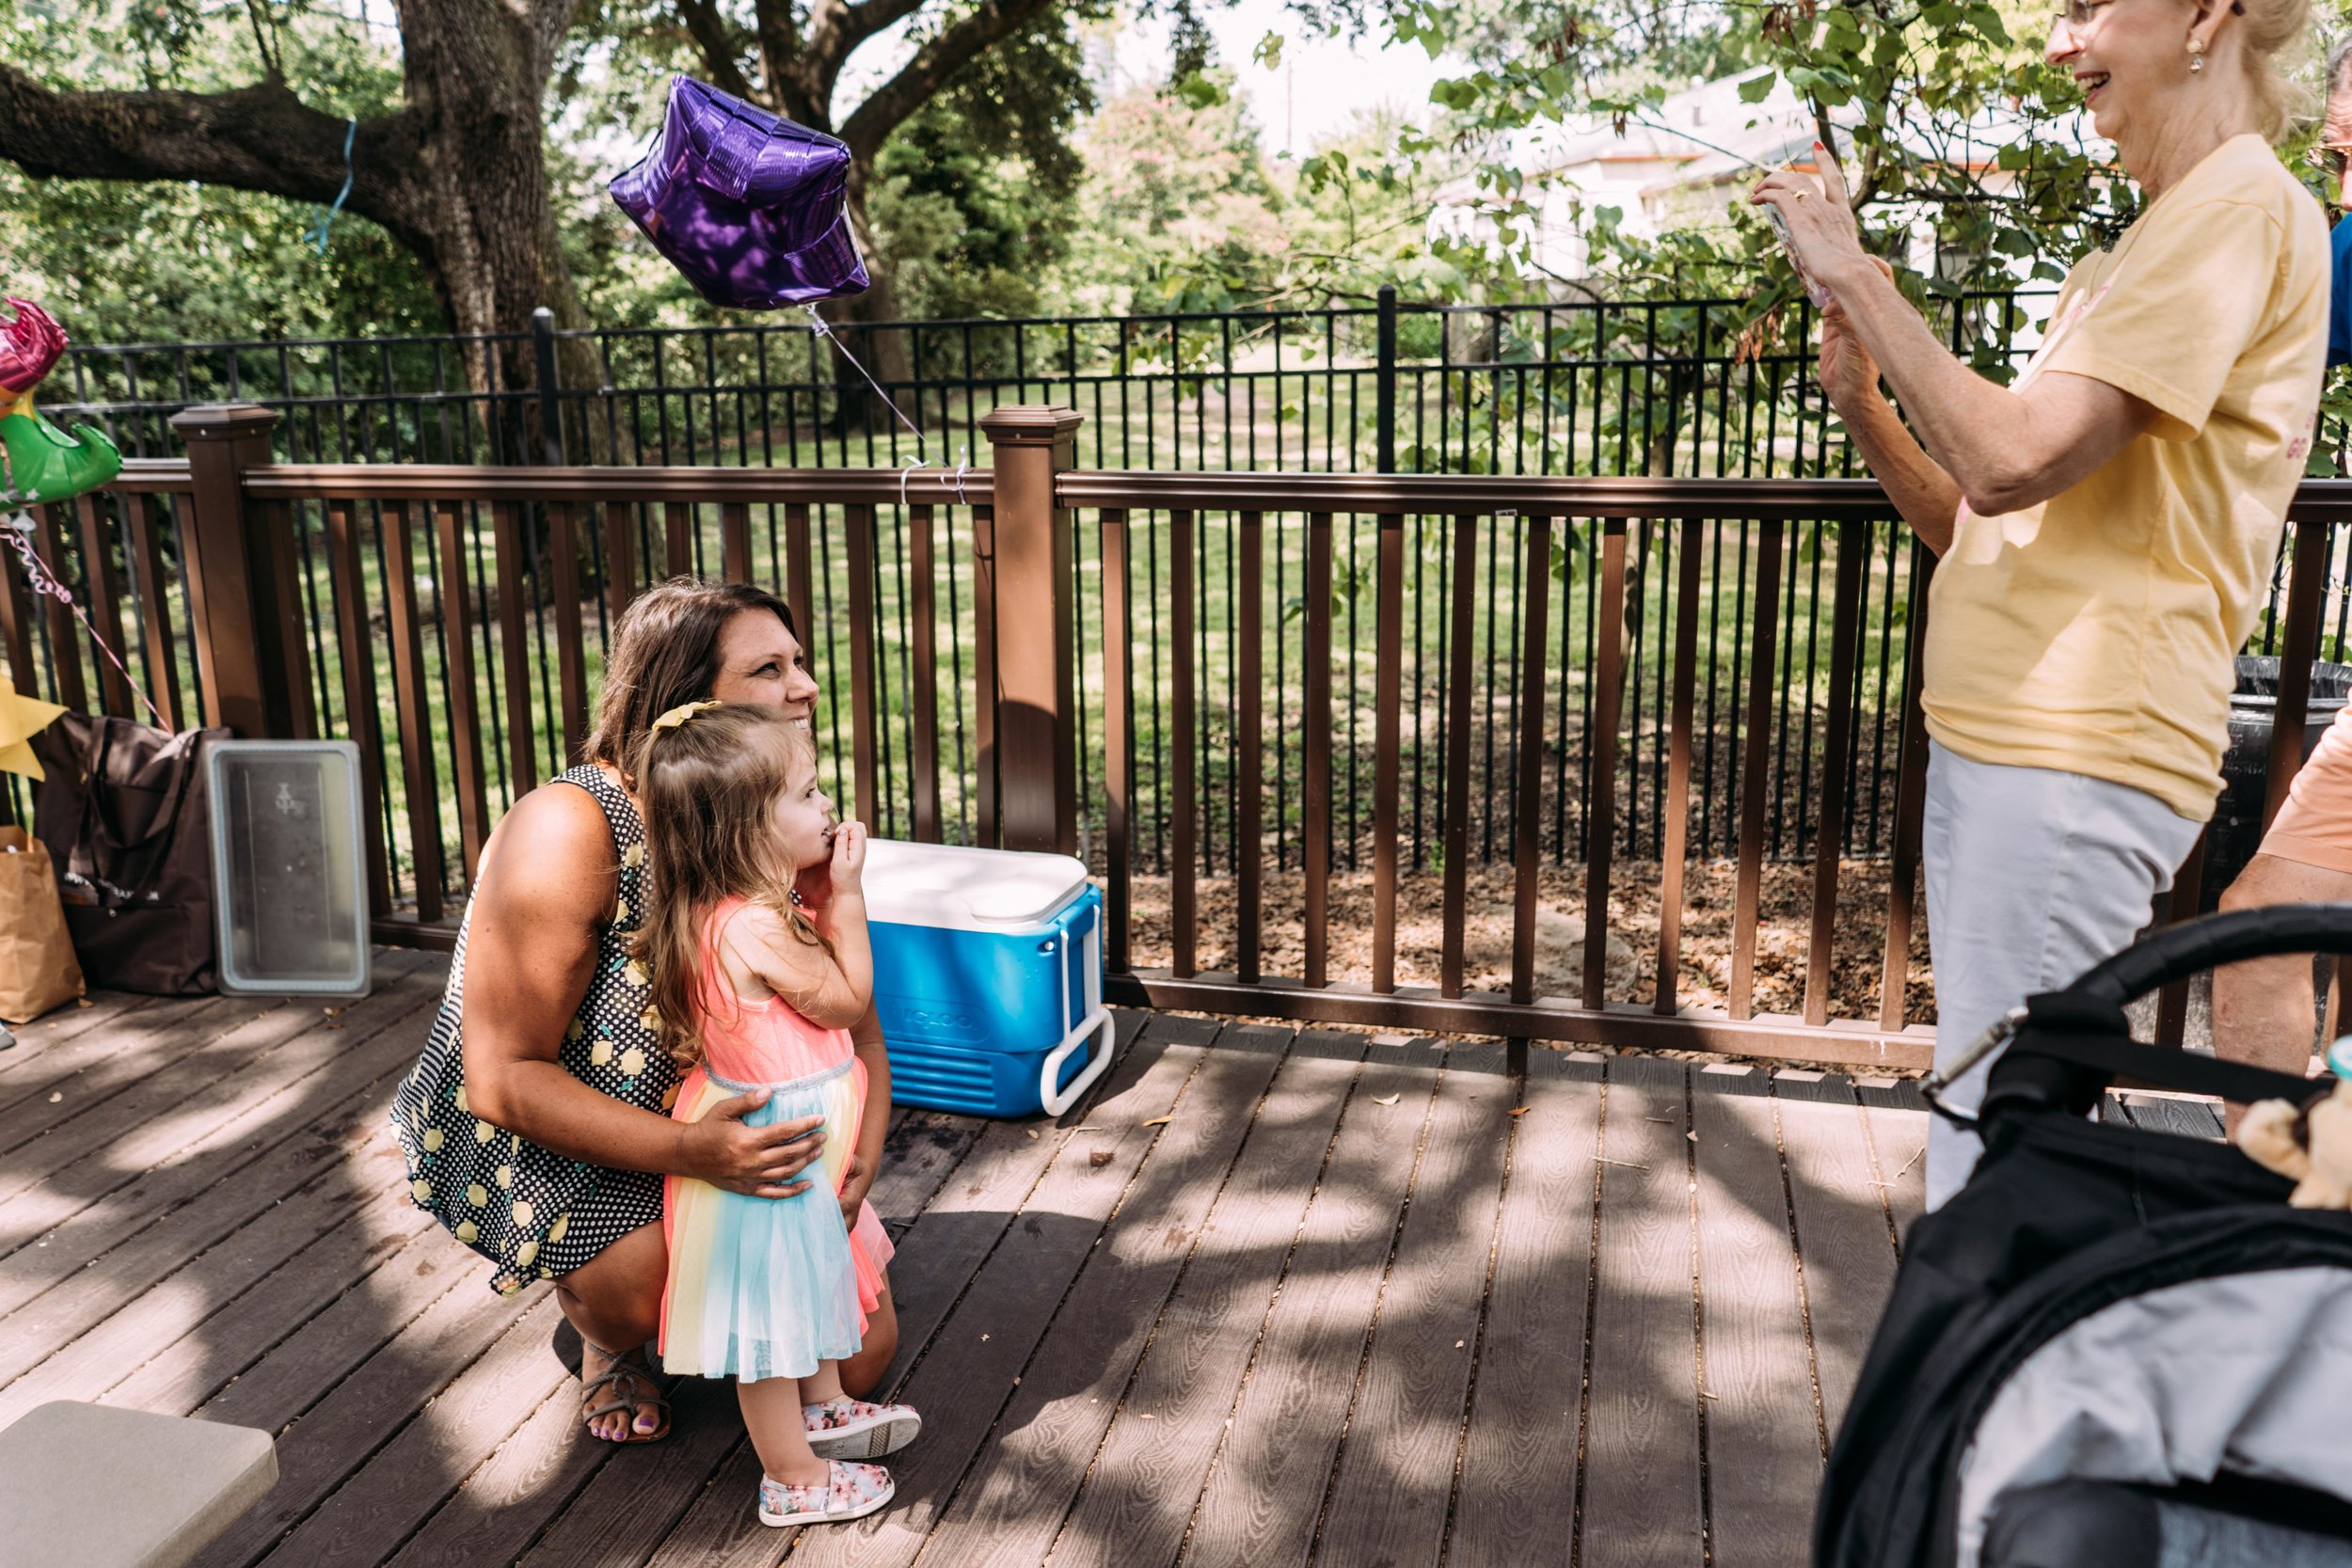 birthday party at the park-49.jpg